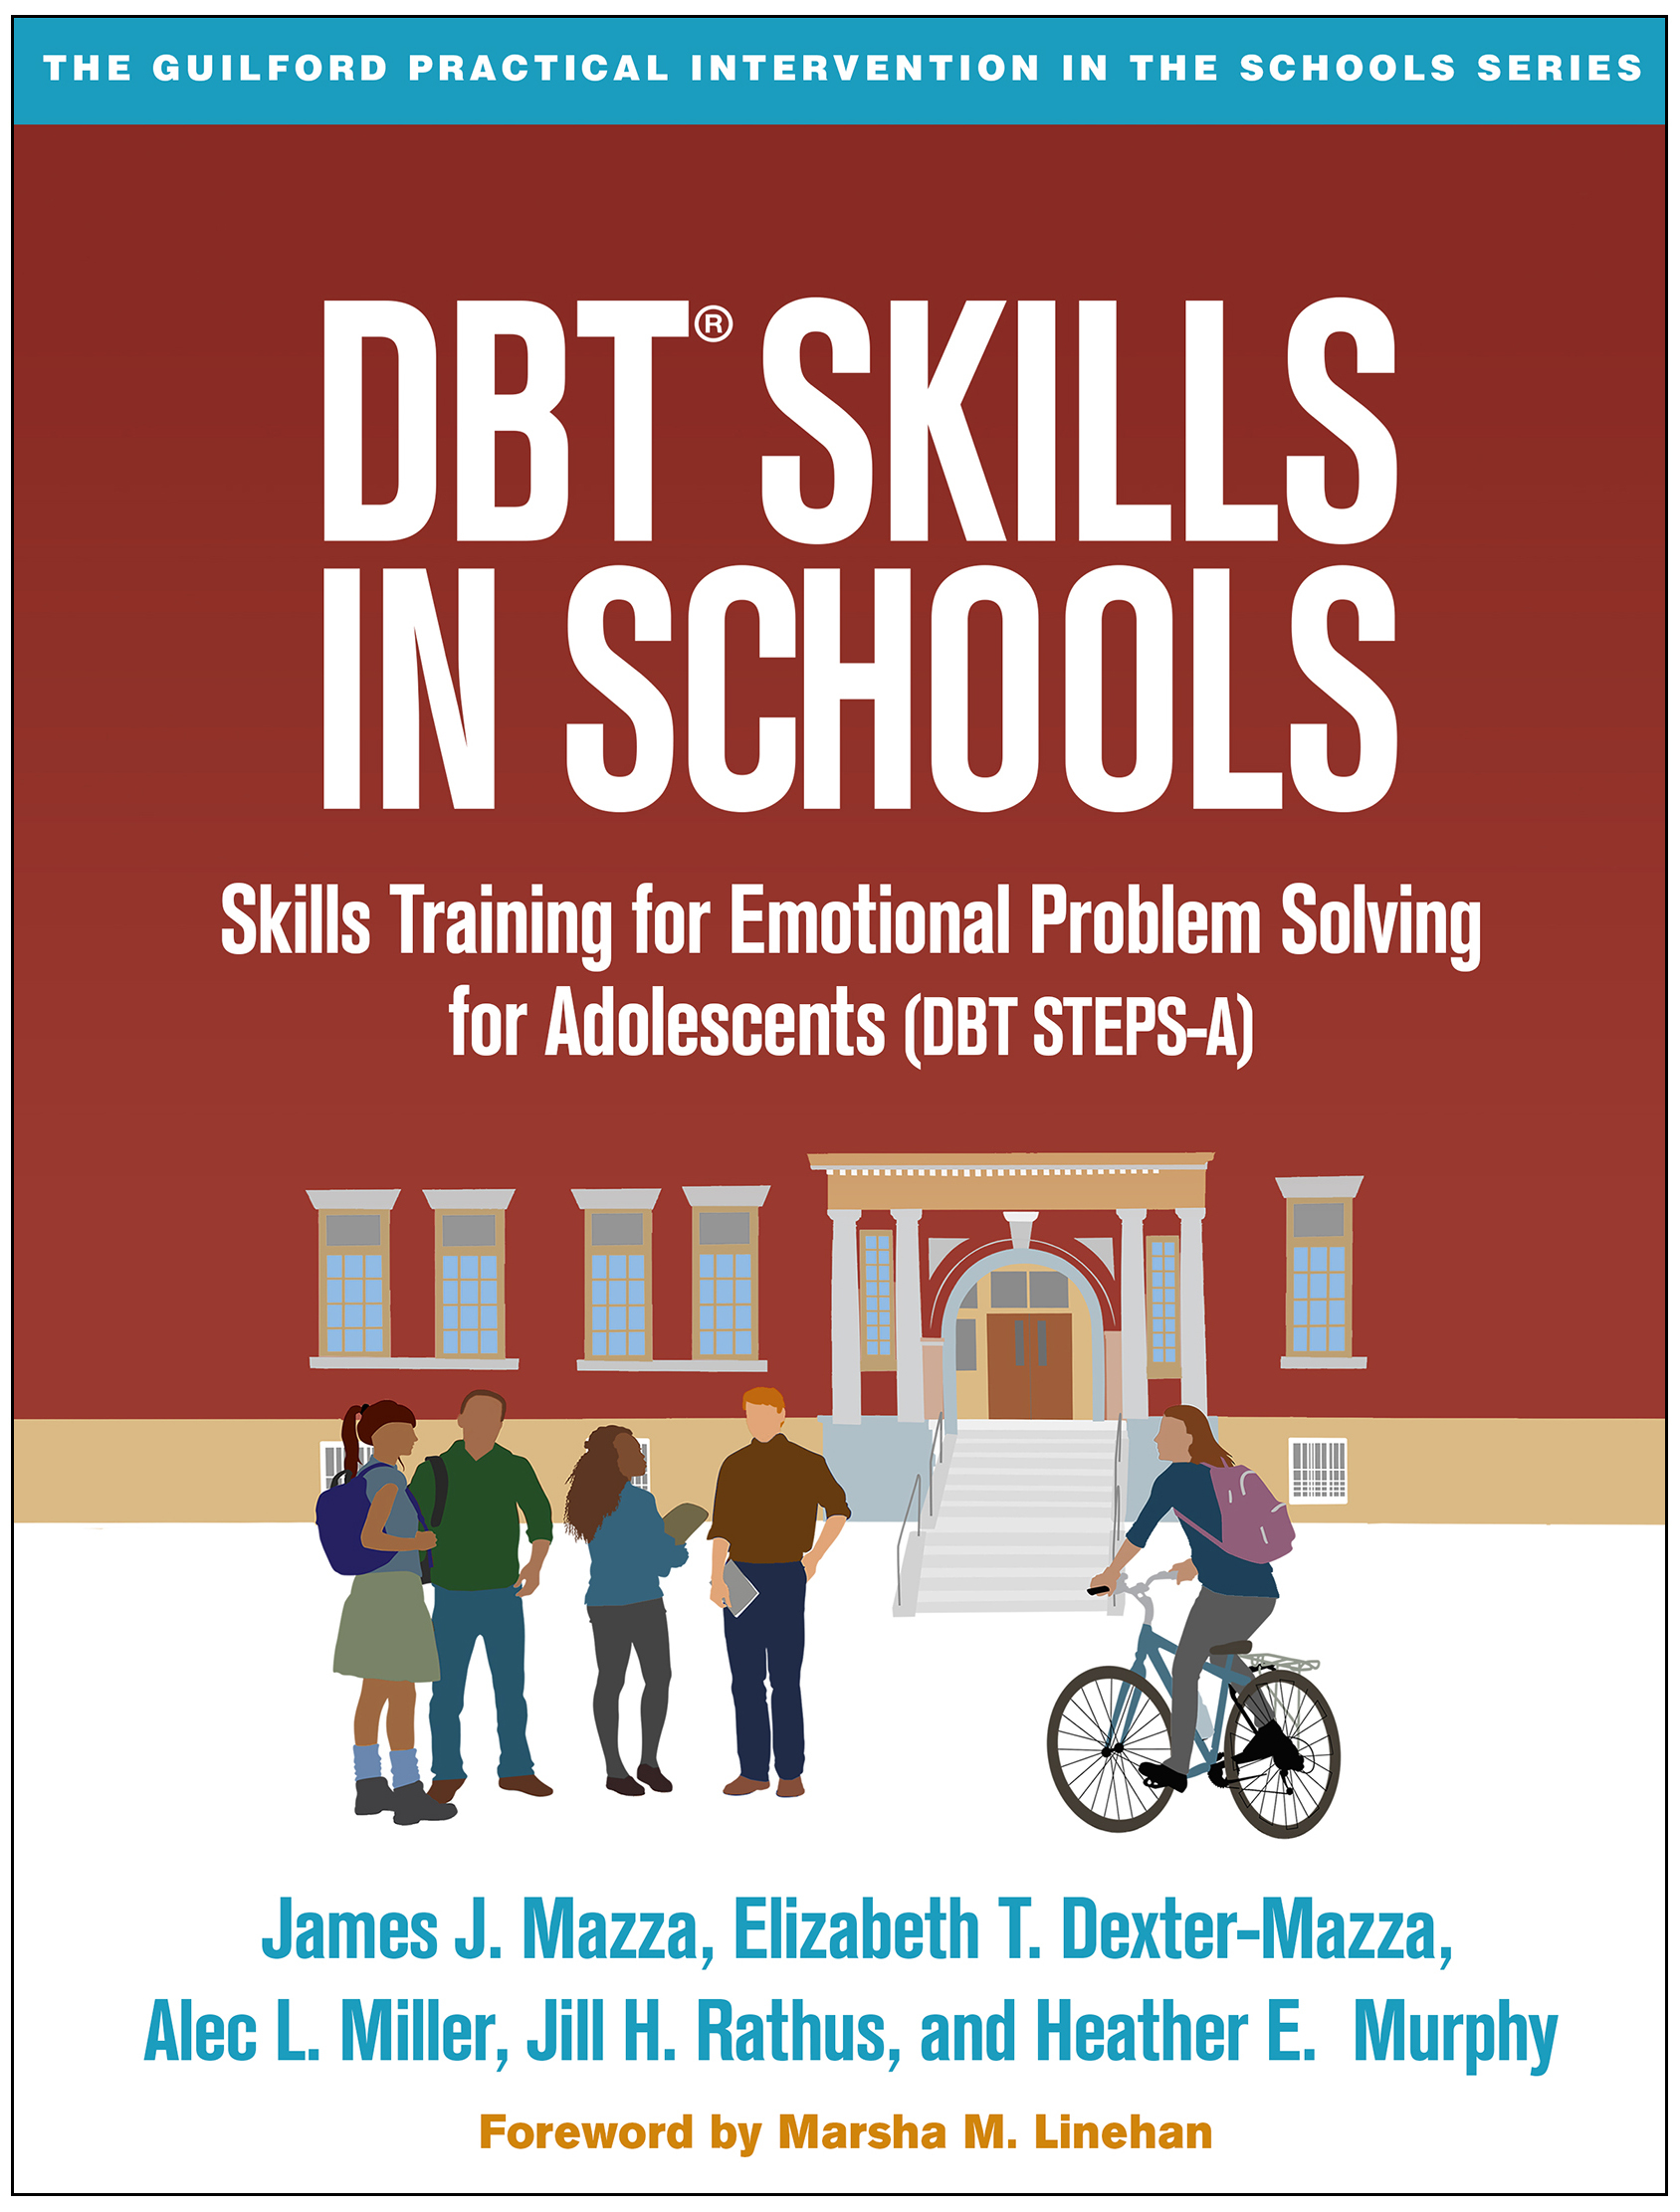 DBT-Skills-in-Schools-Skills-Training-for-Emotional-Problem-Solving-for-Adolescents-DBT-STEPS-A-